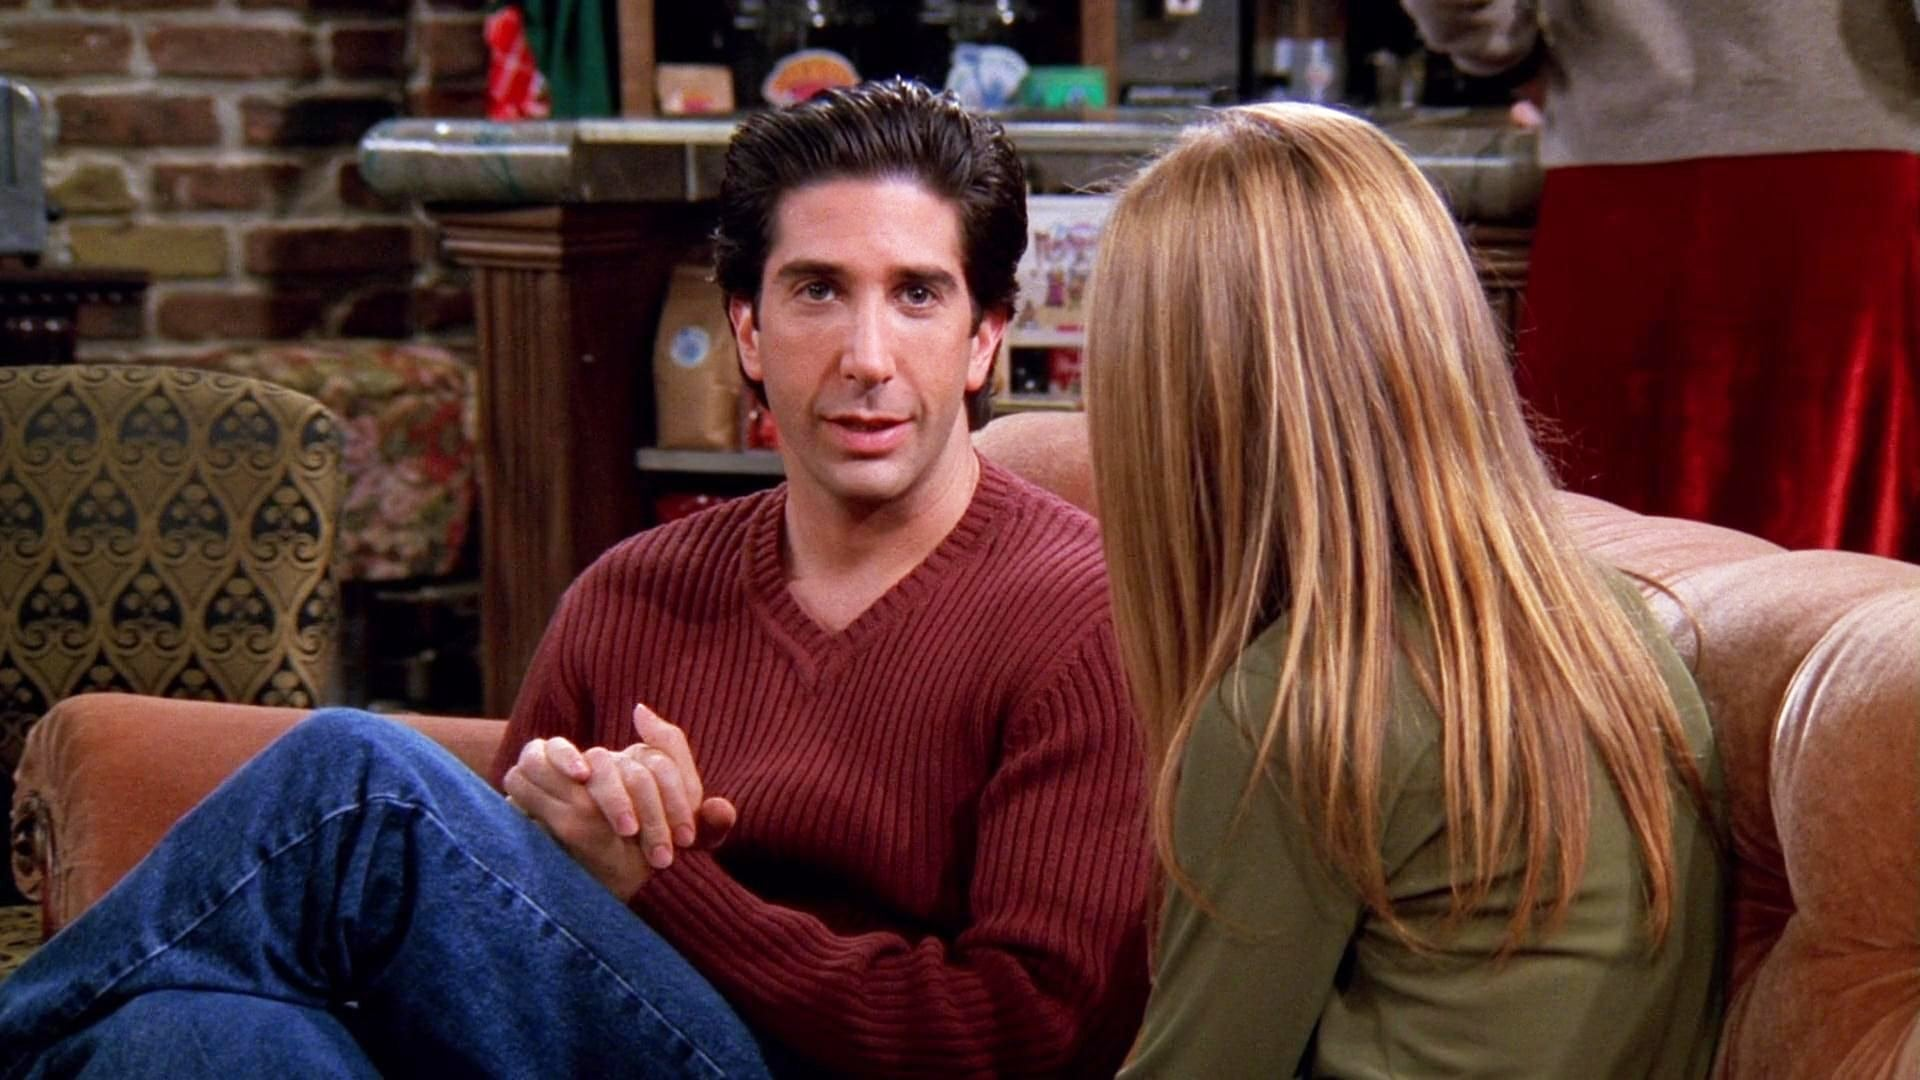 Friends - Season 5 Episode 5 : The One with the Kips